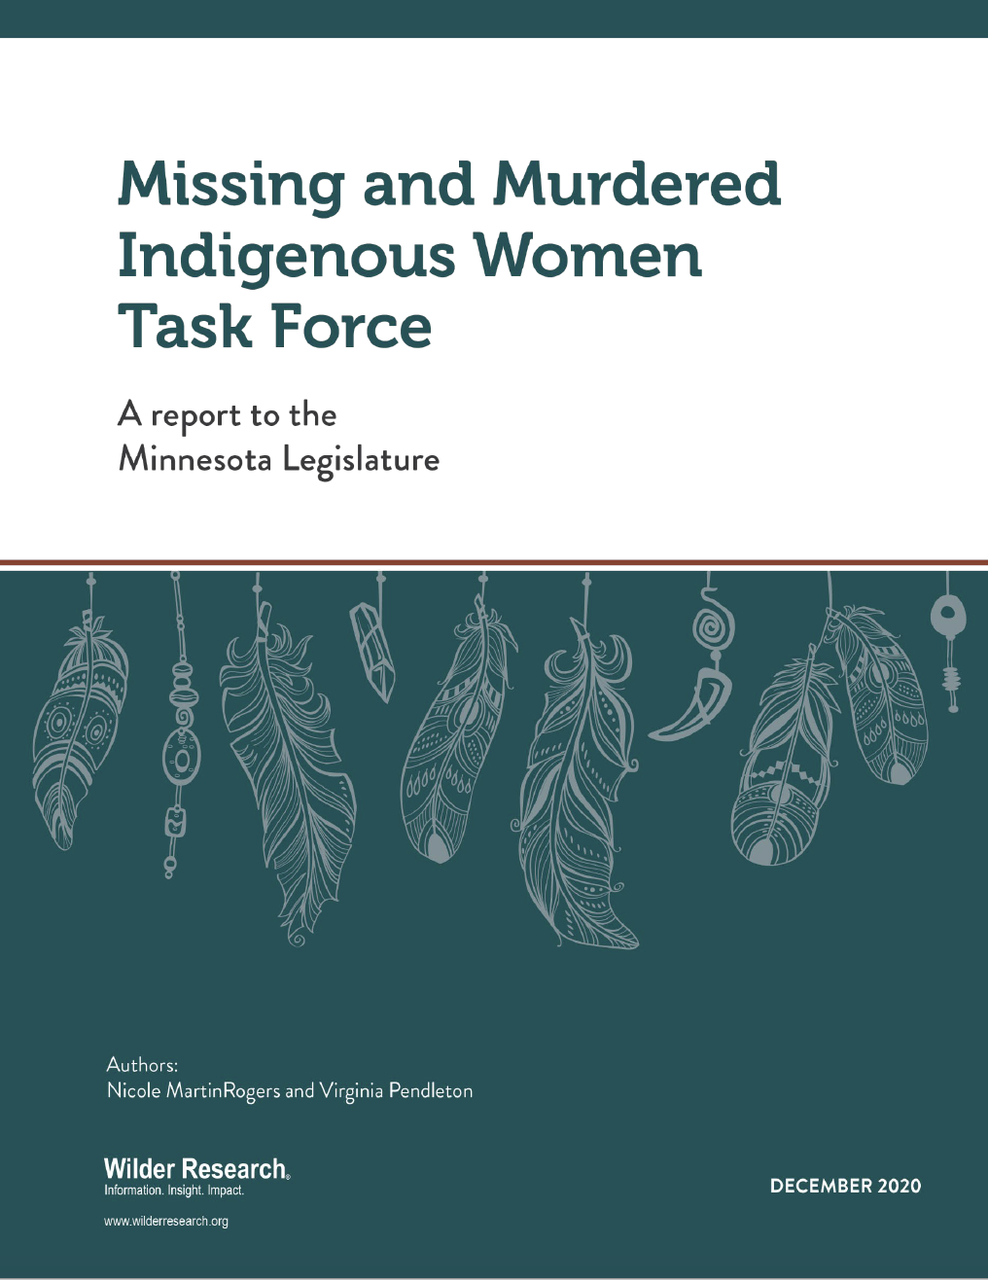 Missing and Murdered Indigenous Women Task Force - A report to the Minnesota Legislature